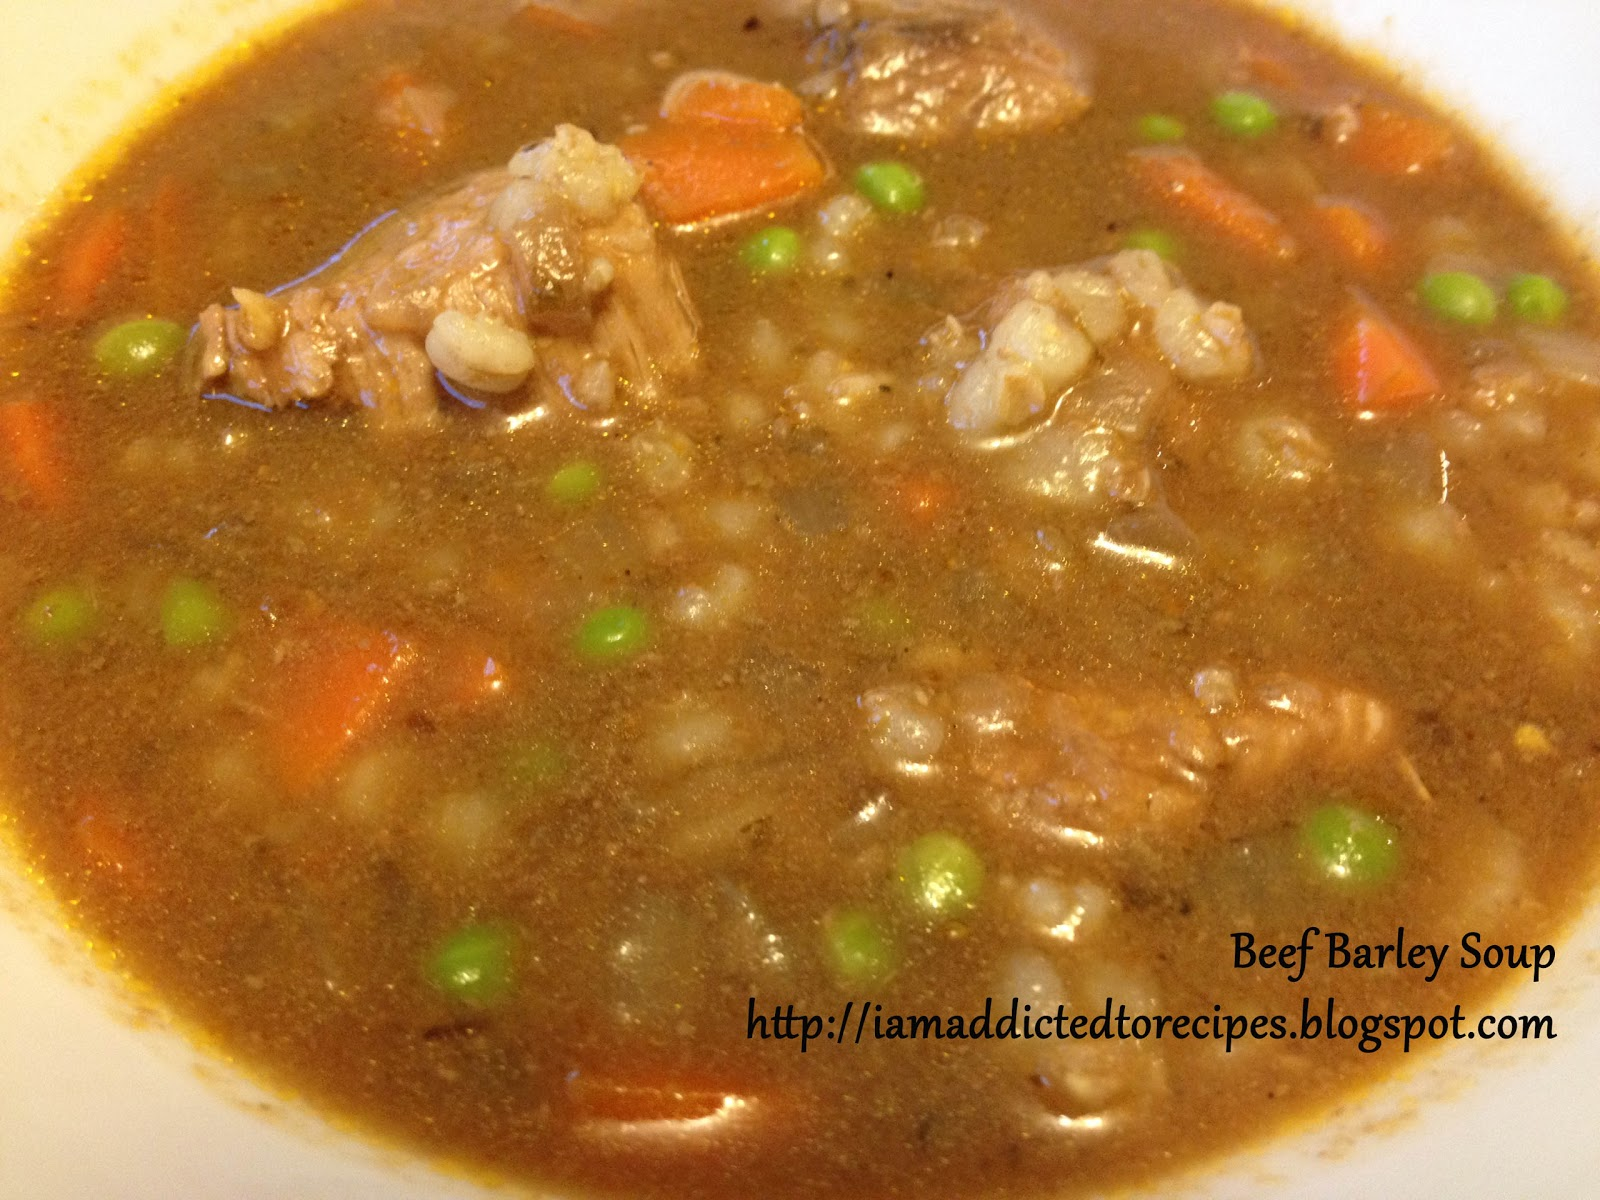 Addicted to Recipes: Beef Barley Soup - Slow Cooker Thursday